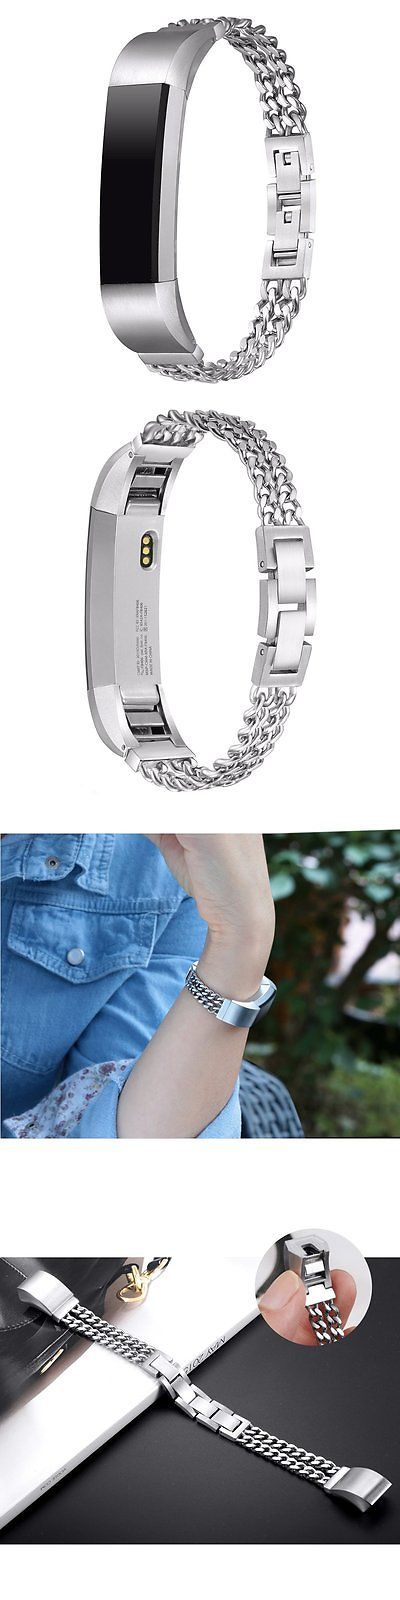 Fit Tech Parts and Accessories 179799: Sleek Steel Chains Small New Wristband Band Strap Bracelet For Fitbit Alta And Hr -> BUY IT NOW ONLY: $32.96 on eBay!